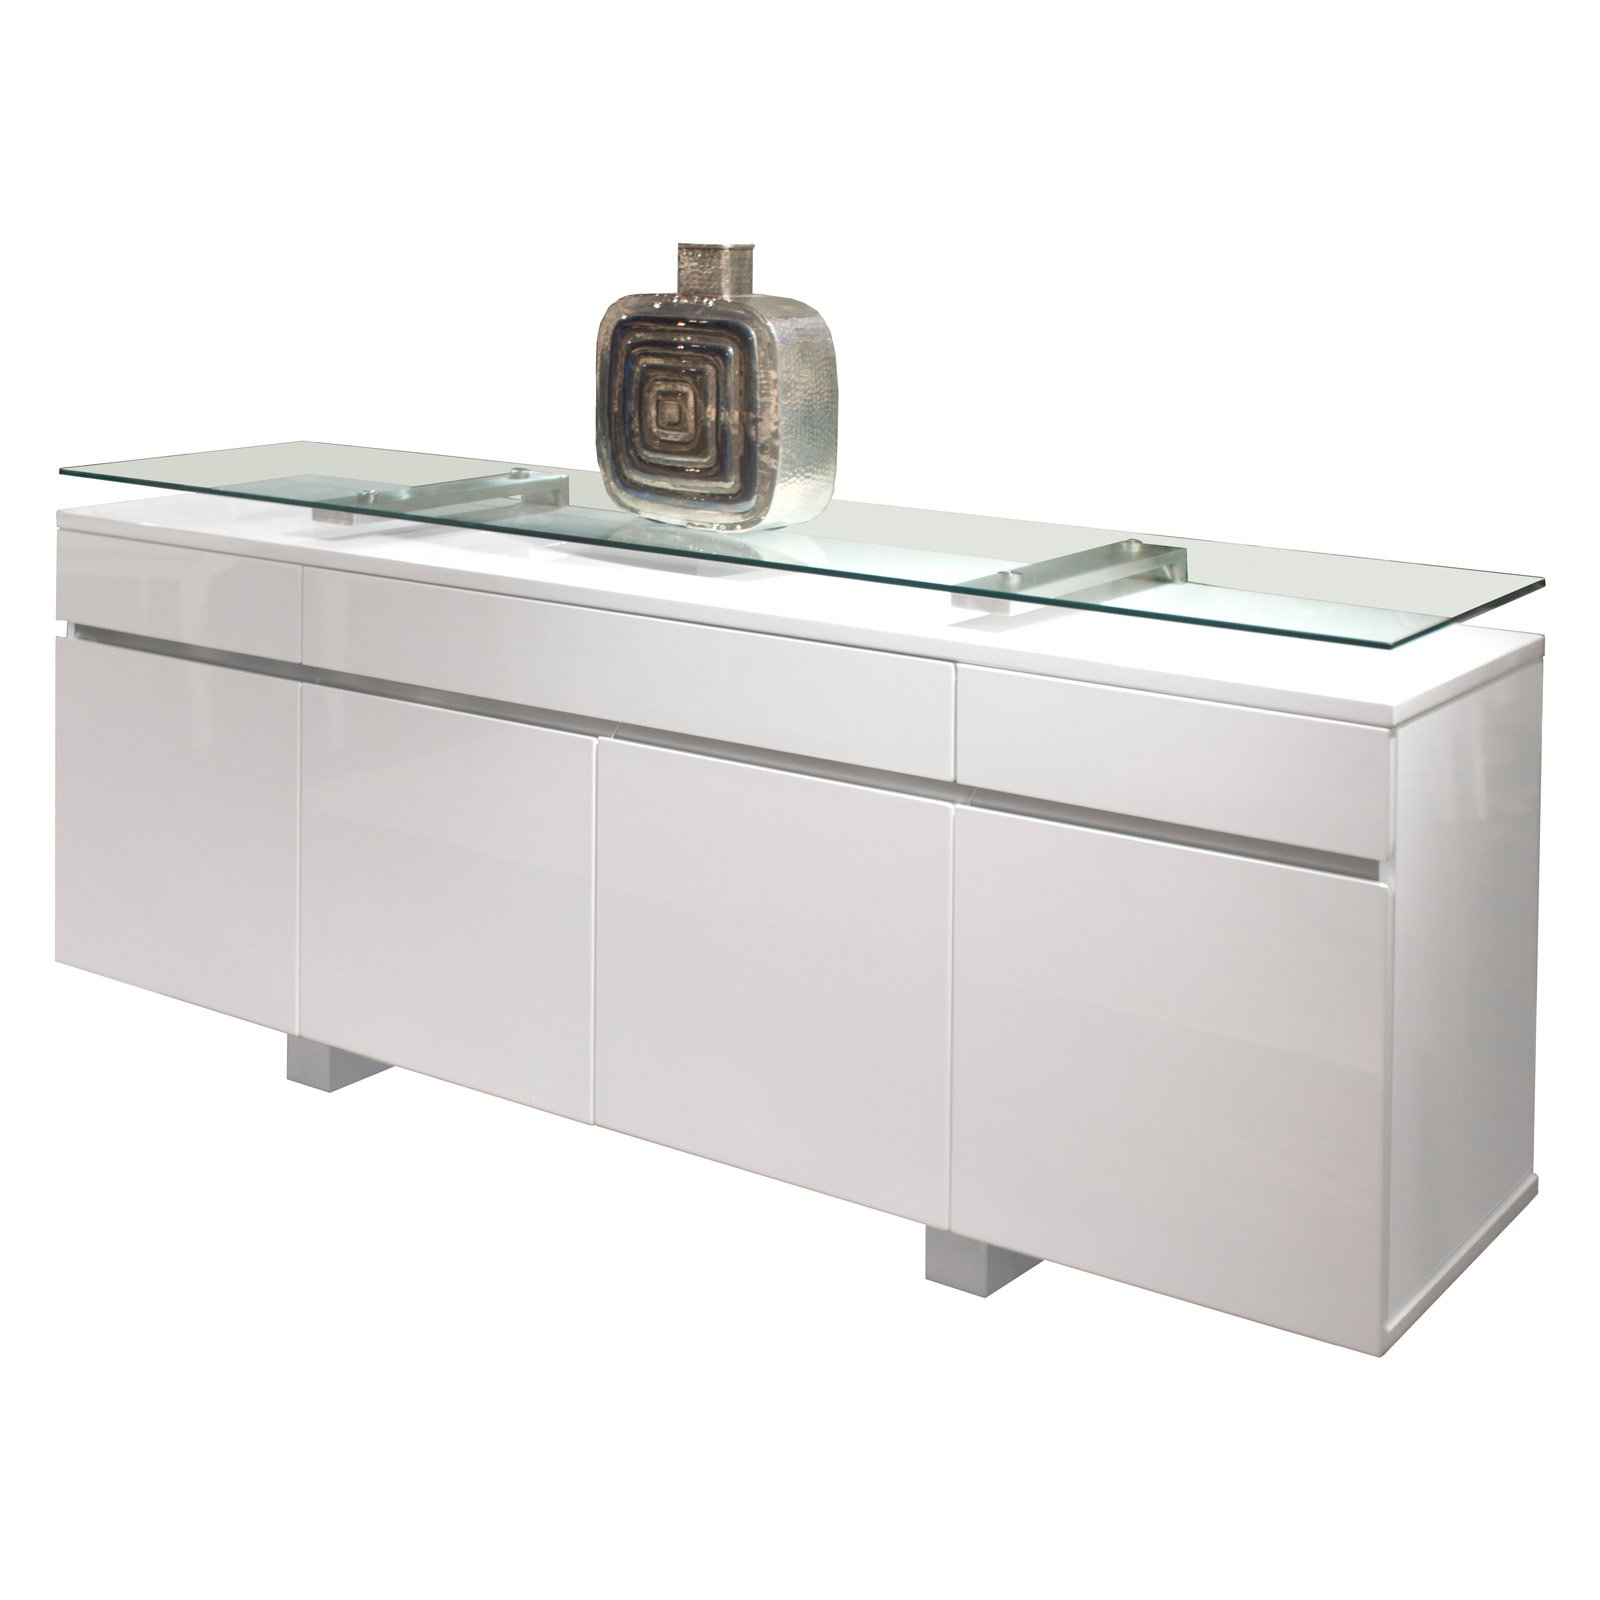 Novo Dining Buffet – White Lacquer | Products In 2019 Throughout Modern Lacquer 2 Door 3 Drawer Buffets (View 8 of 20)